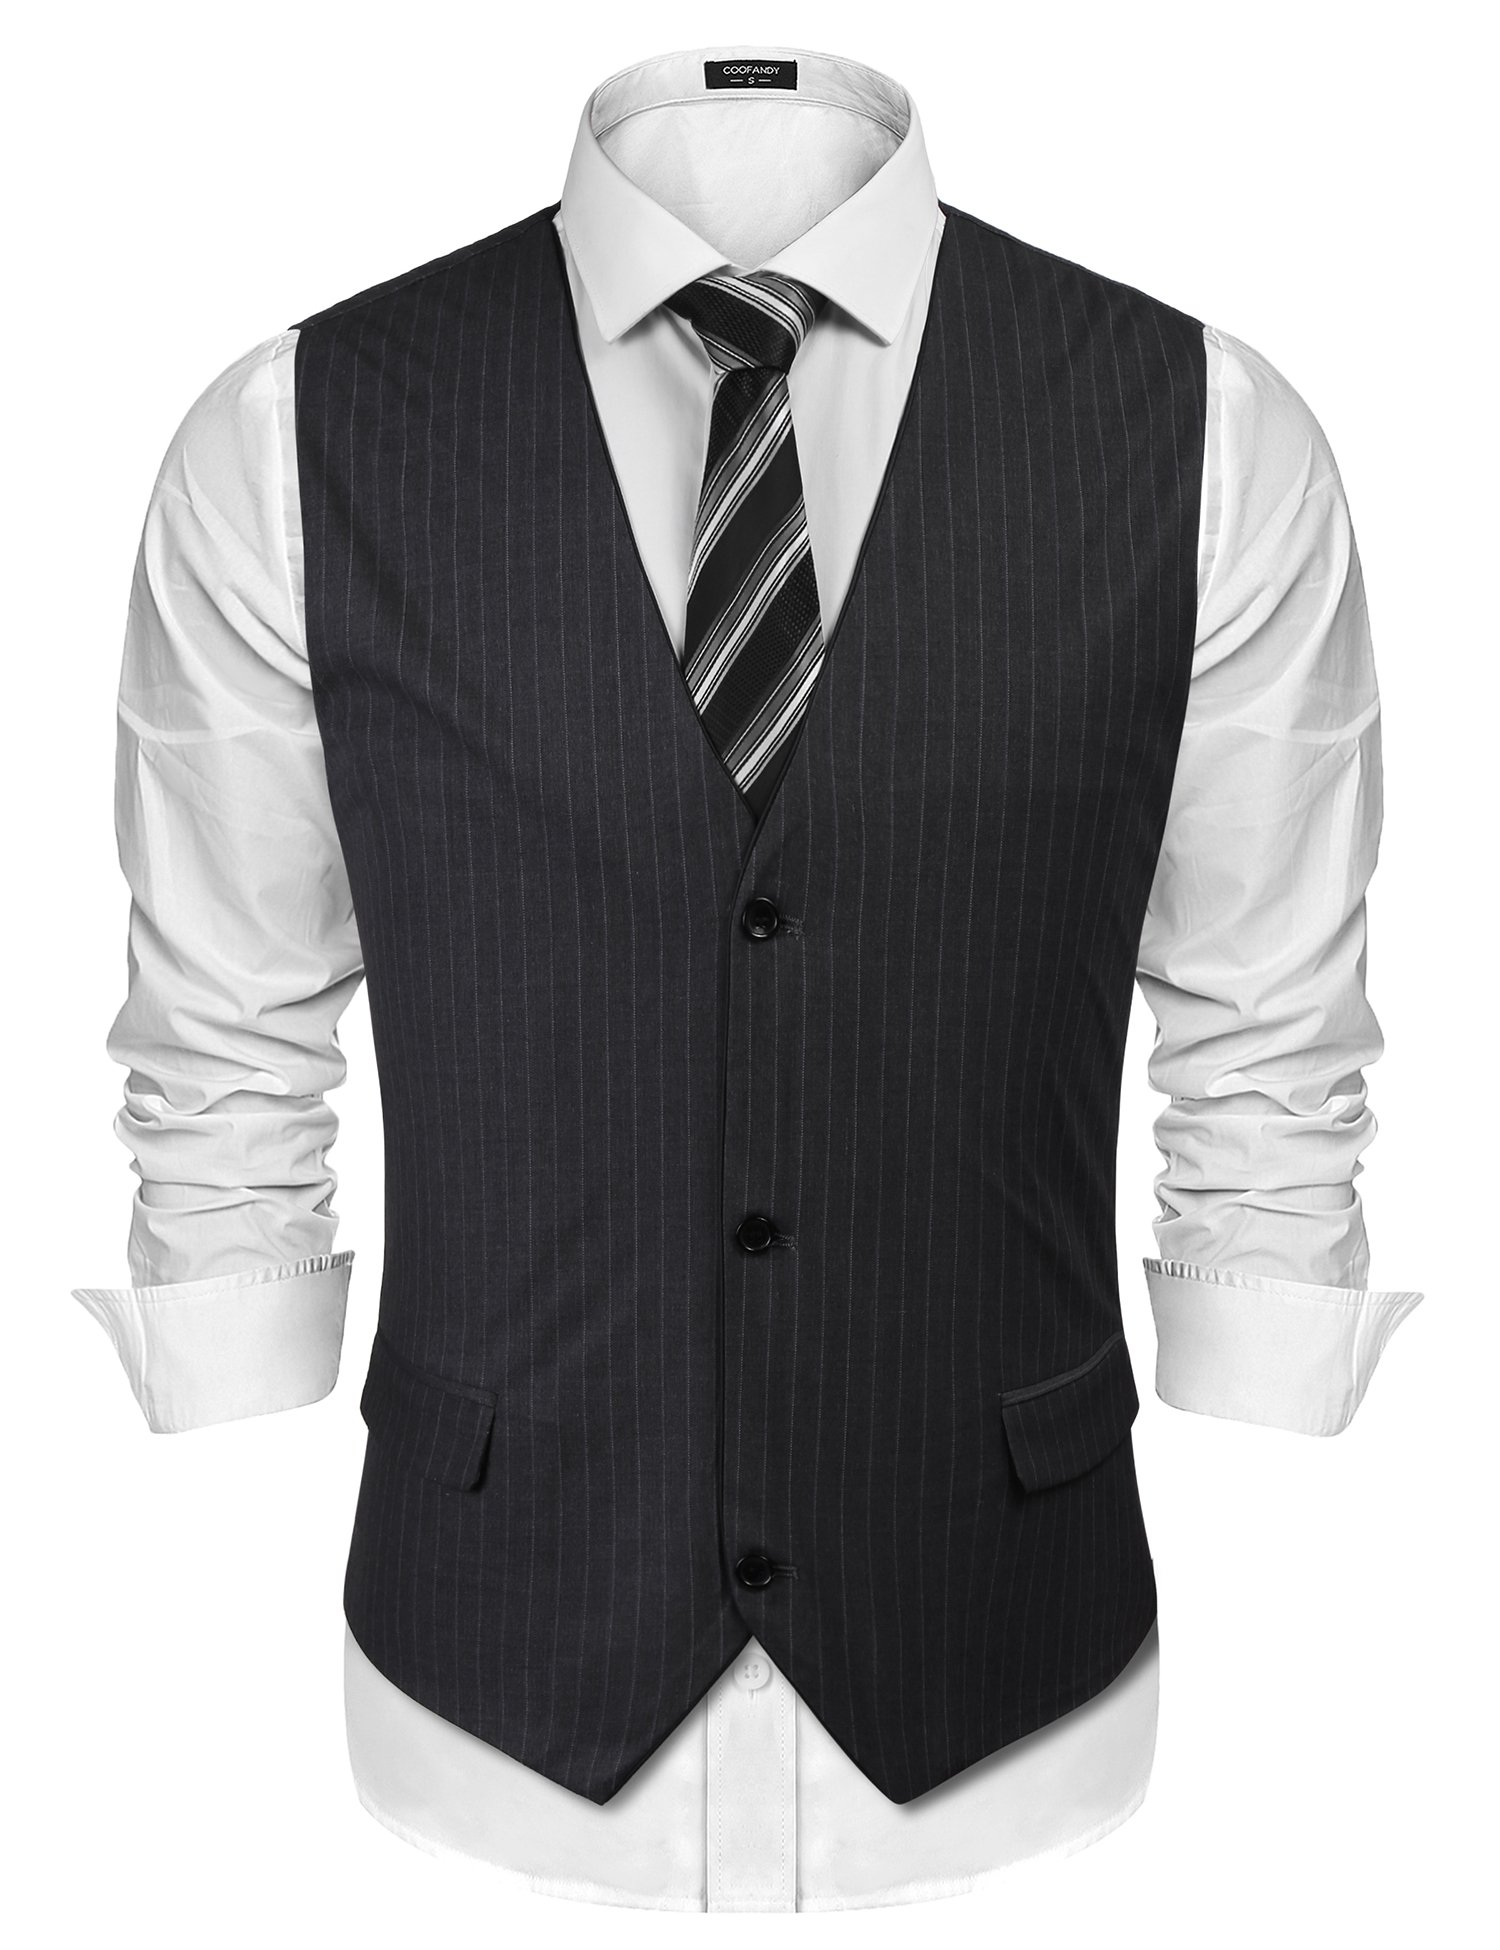 COOFANDY Mens V-Neck Sleeveless Slim Fit Vest Jacket Business Suit Dress Vests,Type 2-grey,X-Large